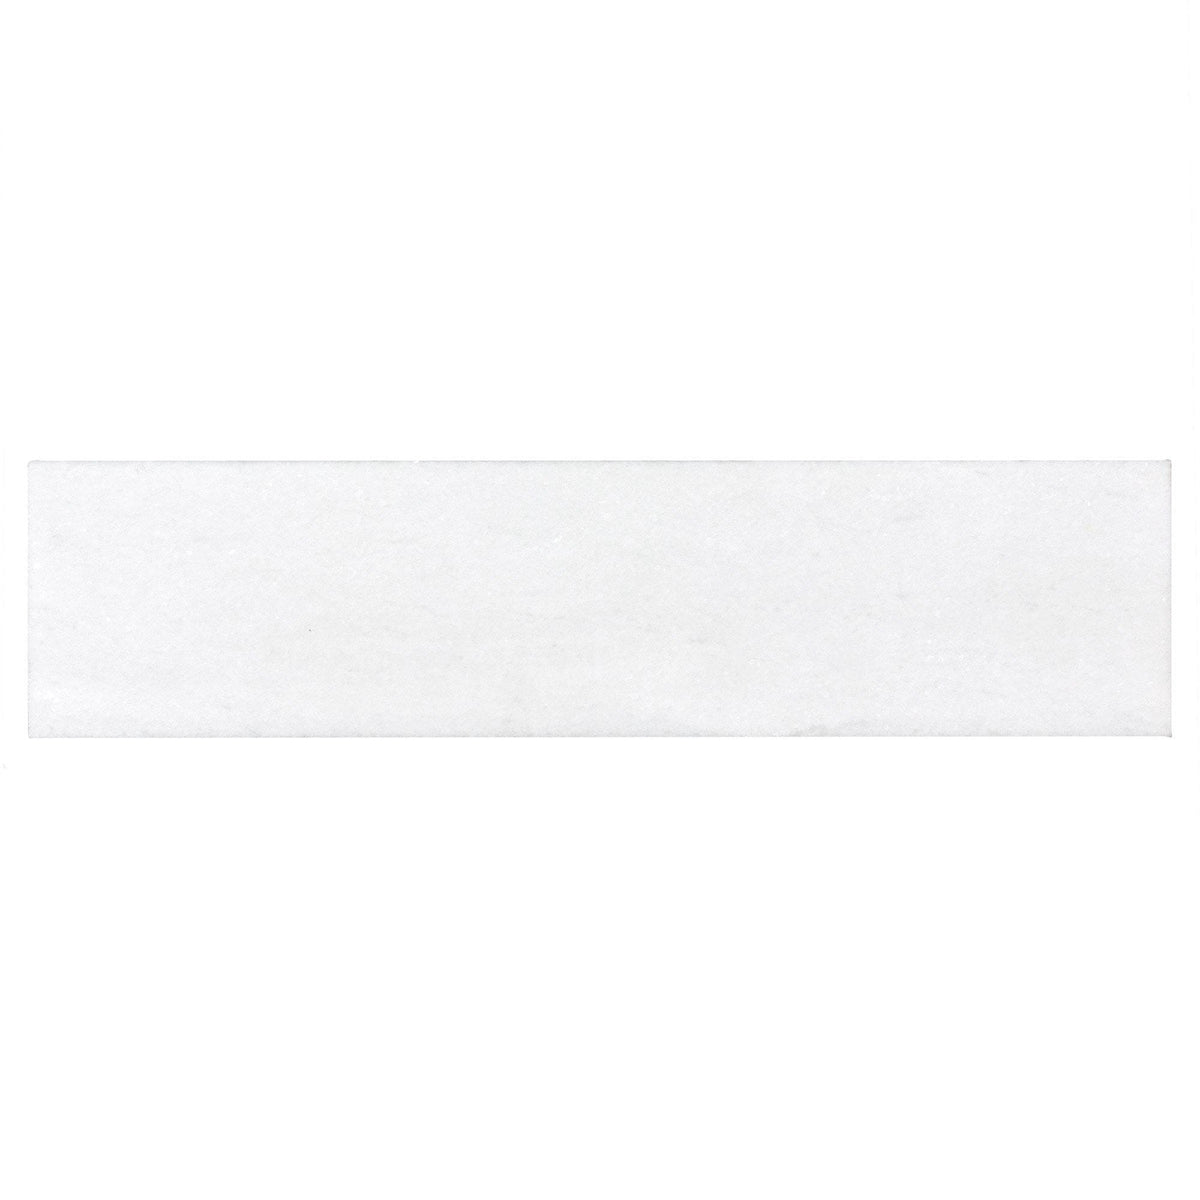 Mto0496 Rustic 3x12 Subway White Polished Stone Tile